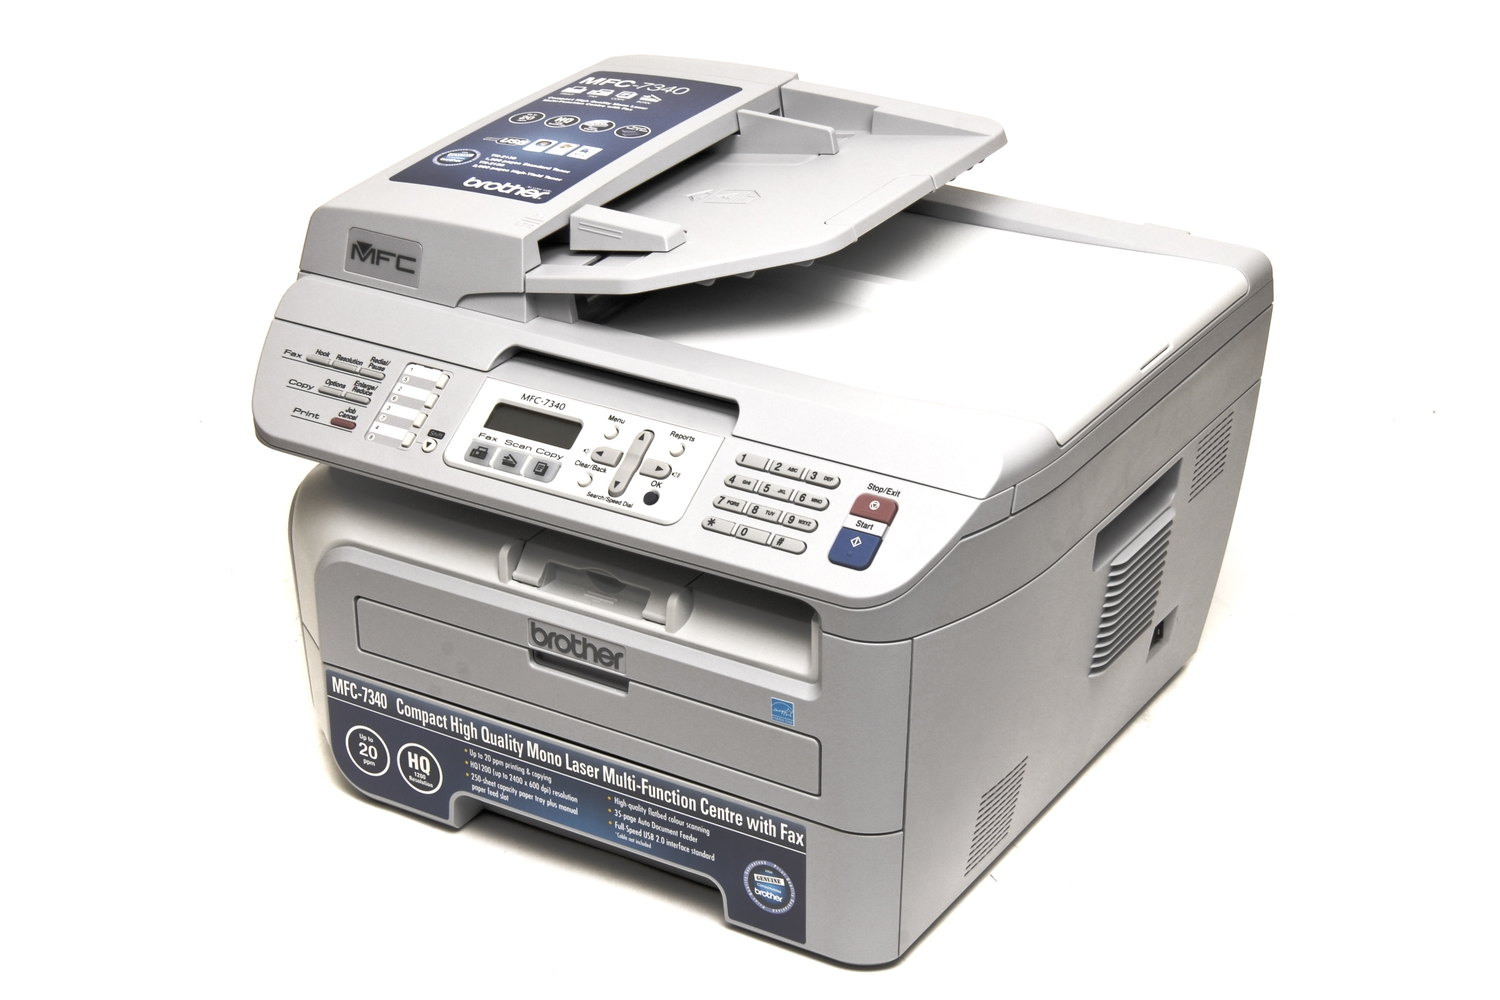 BROTHERS MFC-7340 DRIVER FOR PC